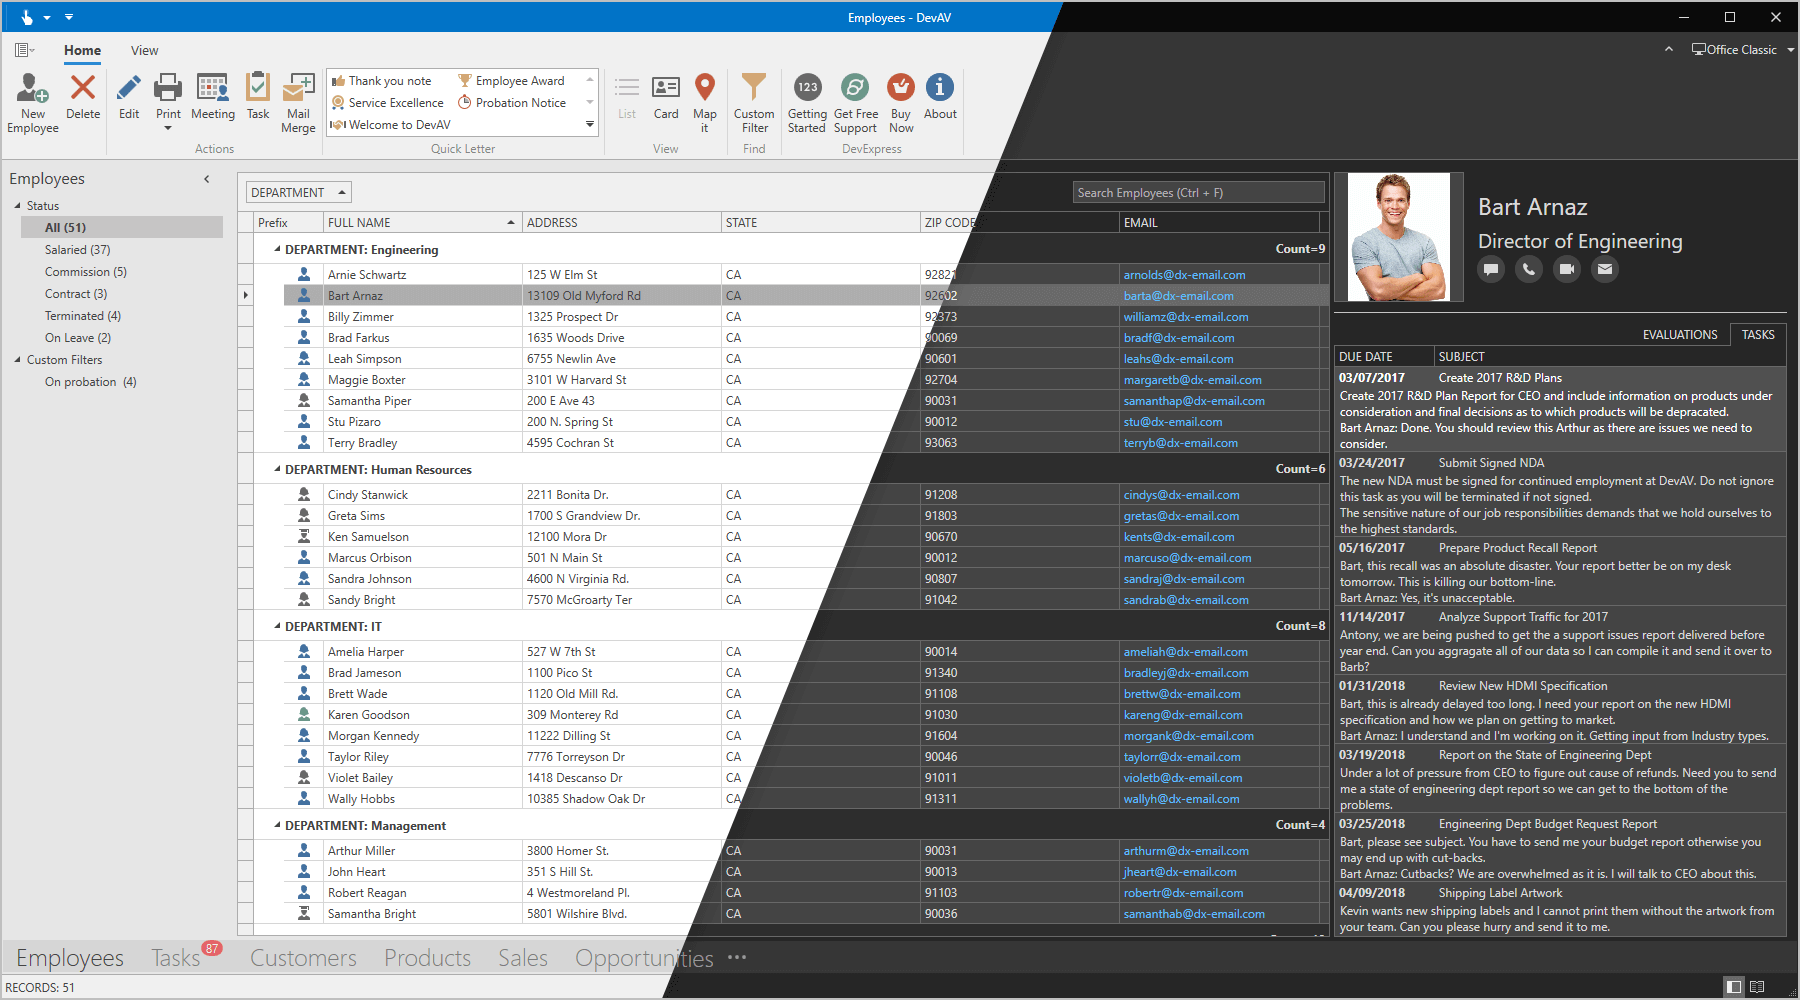 WPF Office 2019 Themes